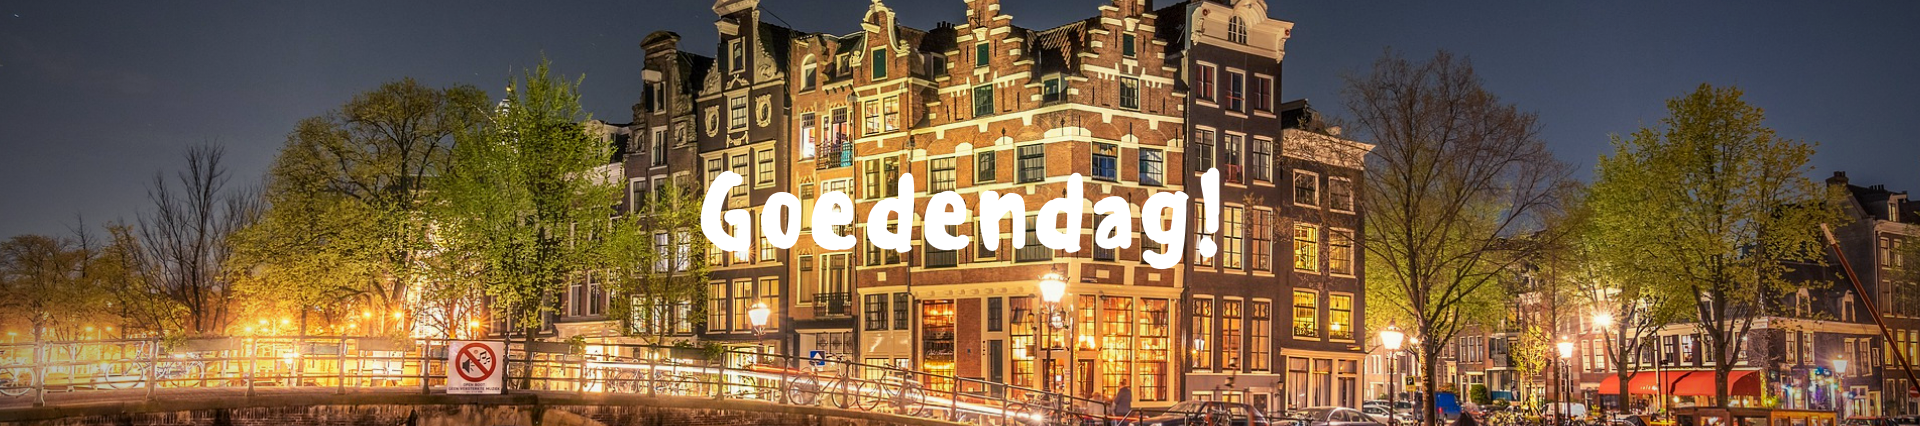 how-to-send-a-parcel-to-the-netherlands